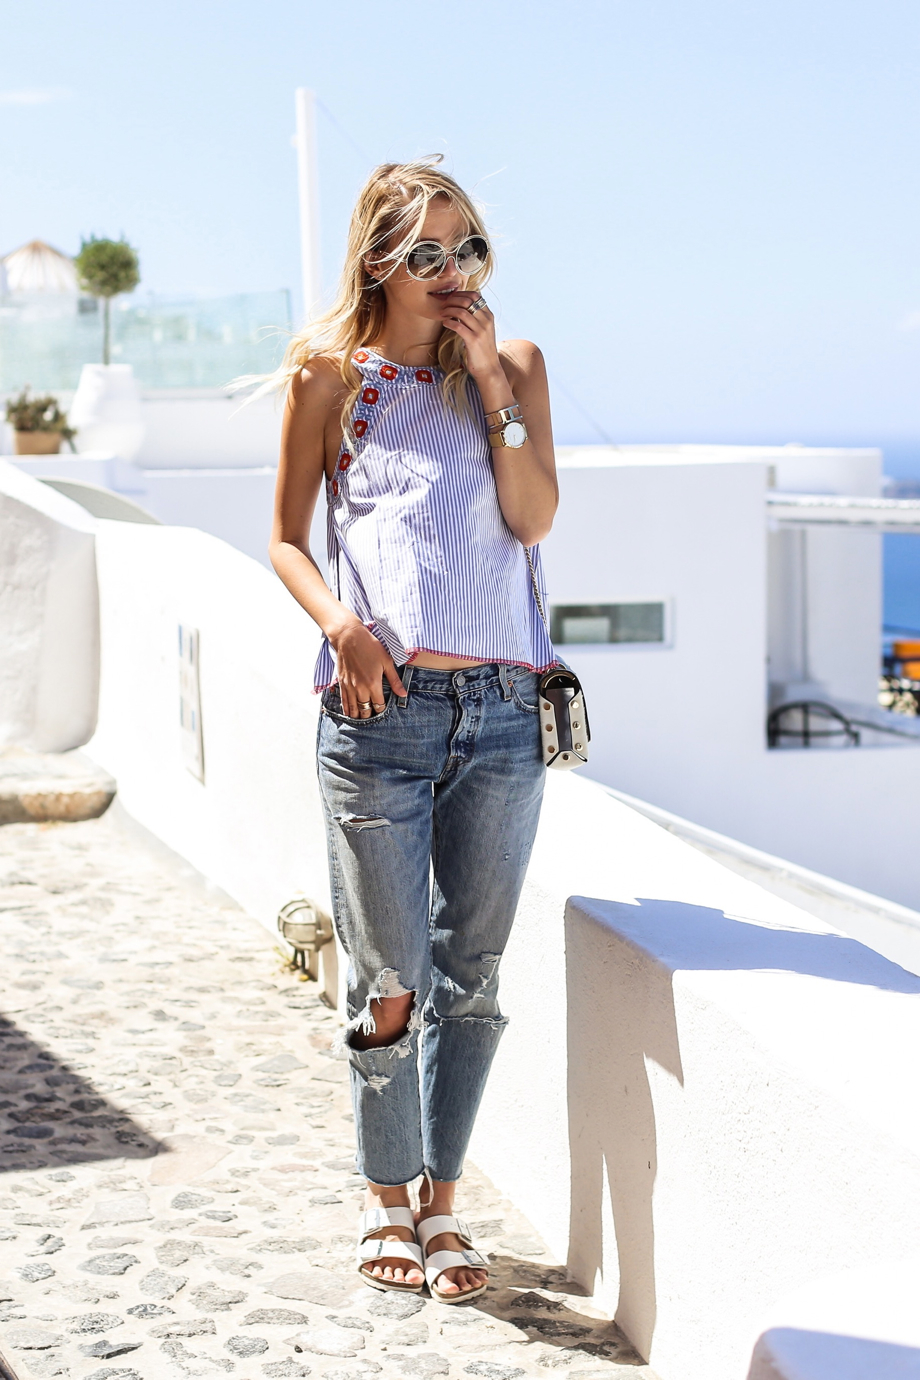 Stripes_Fringes_Levis_ToryBurch_ohhcouture_Santorini01